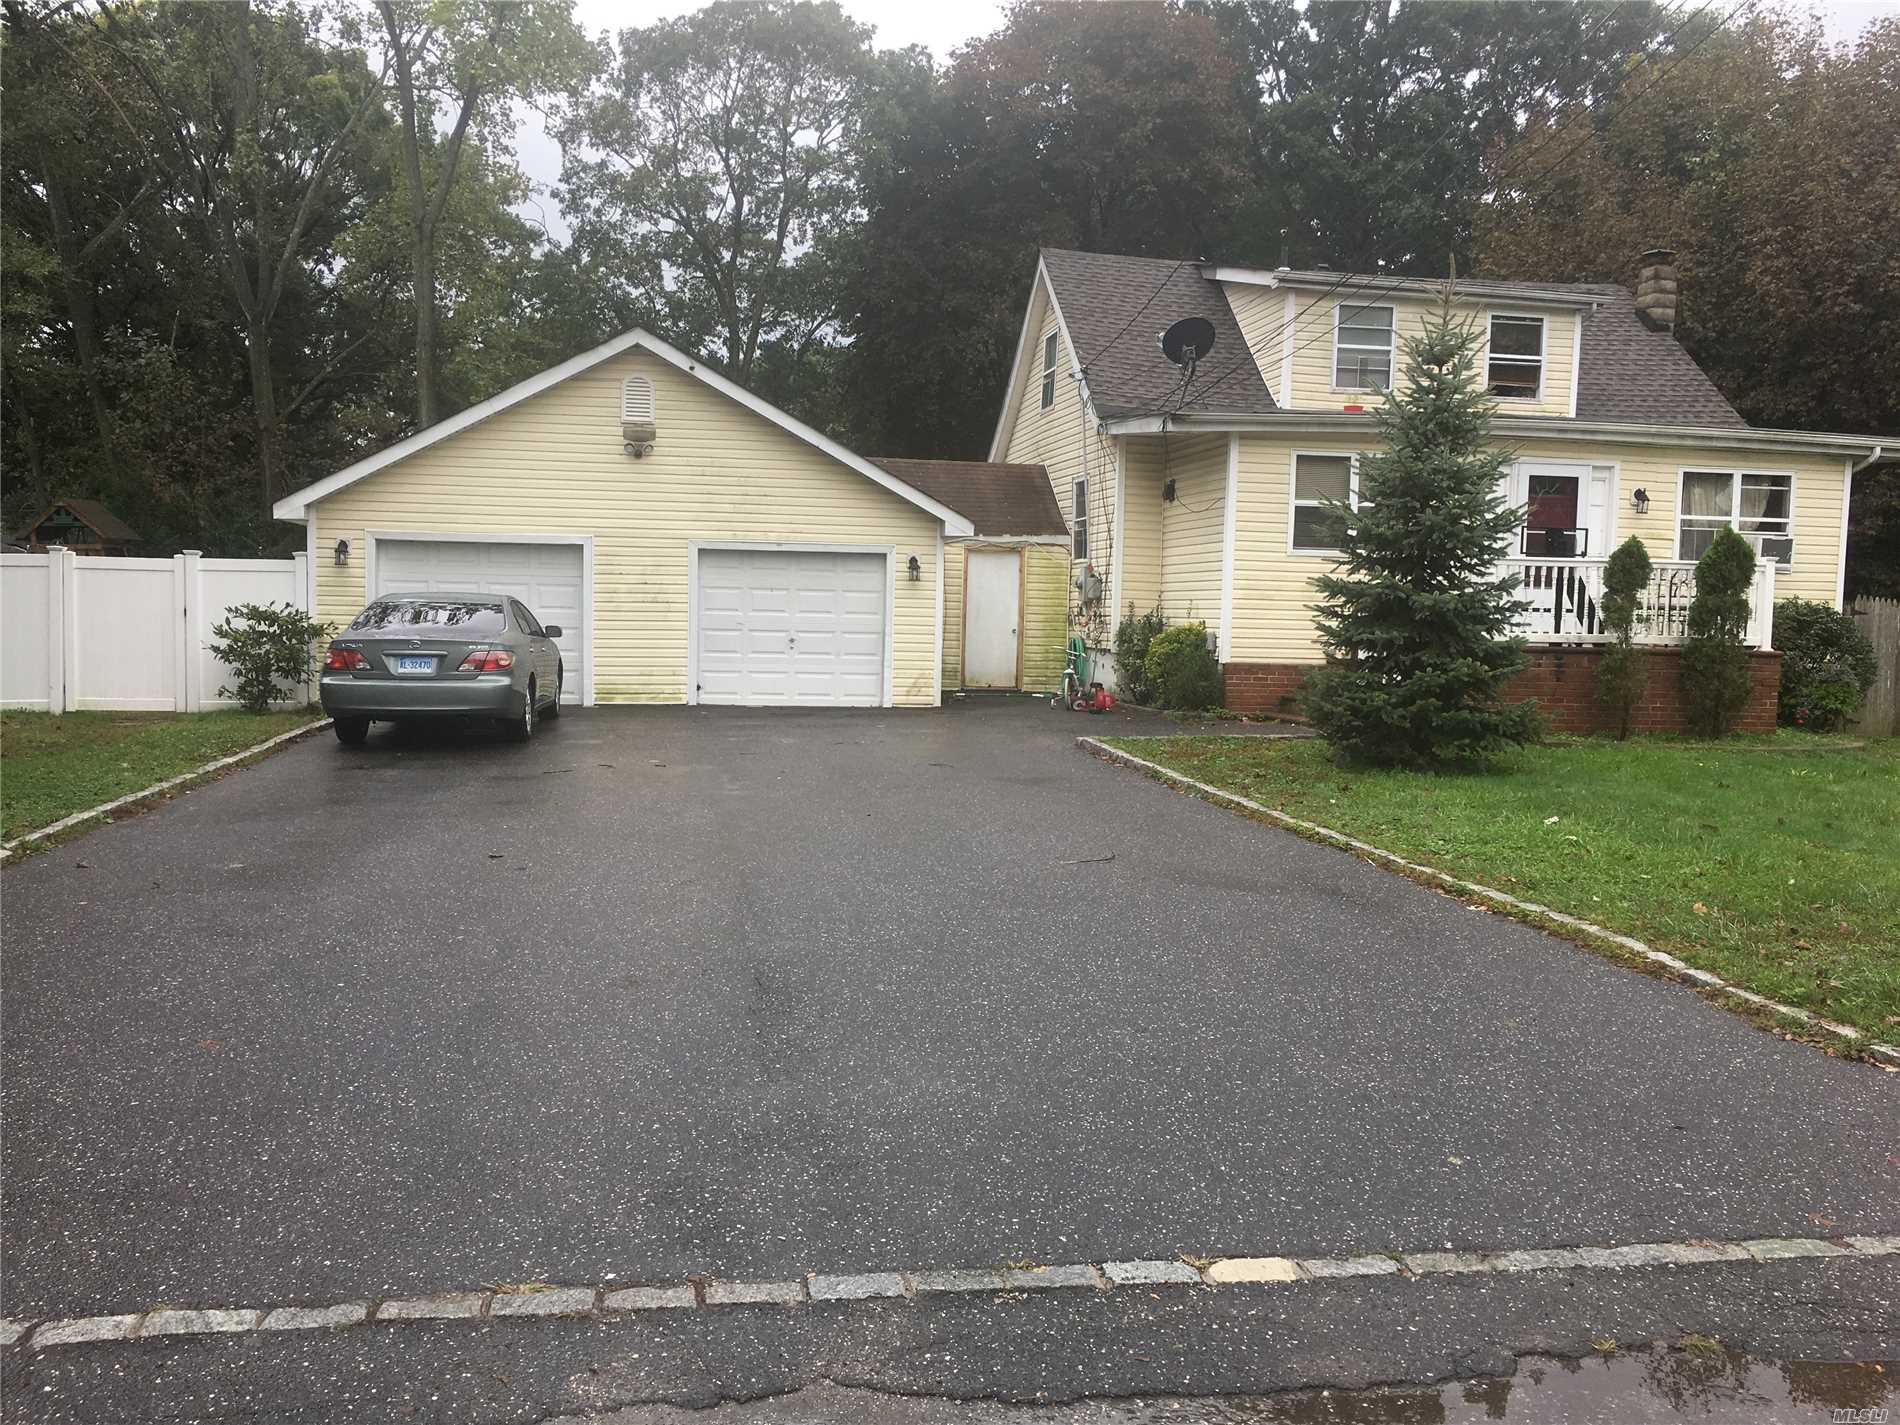 Property Features, 6 Bedrooms, Living Room, 2 Full Bath, Living Rooms, Eat In Kitchen.